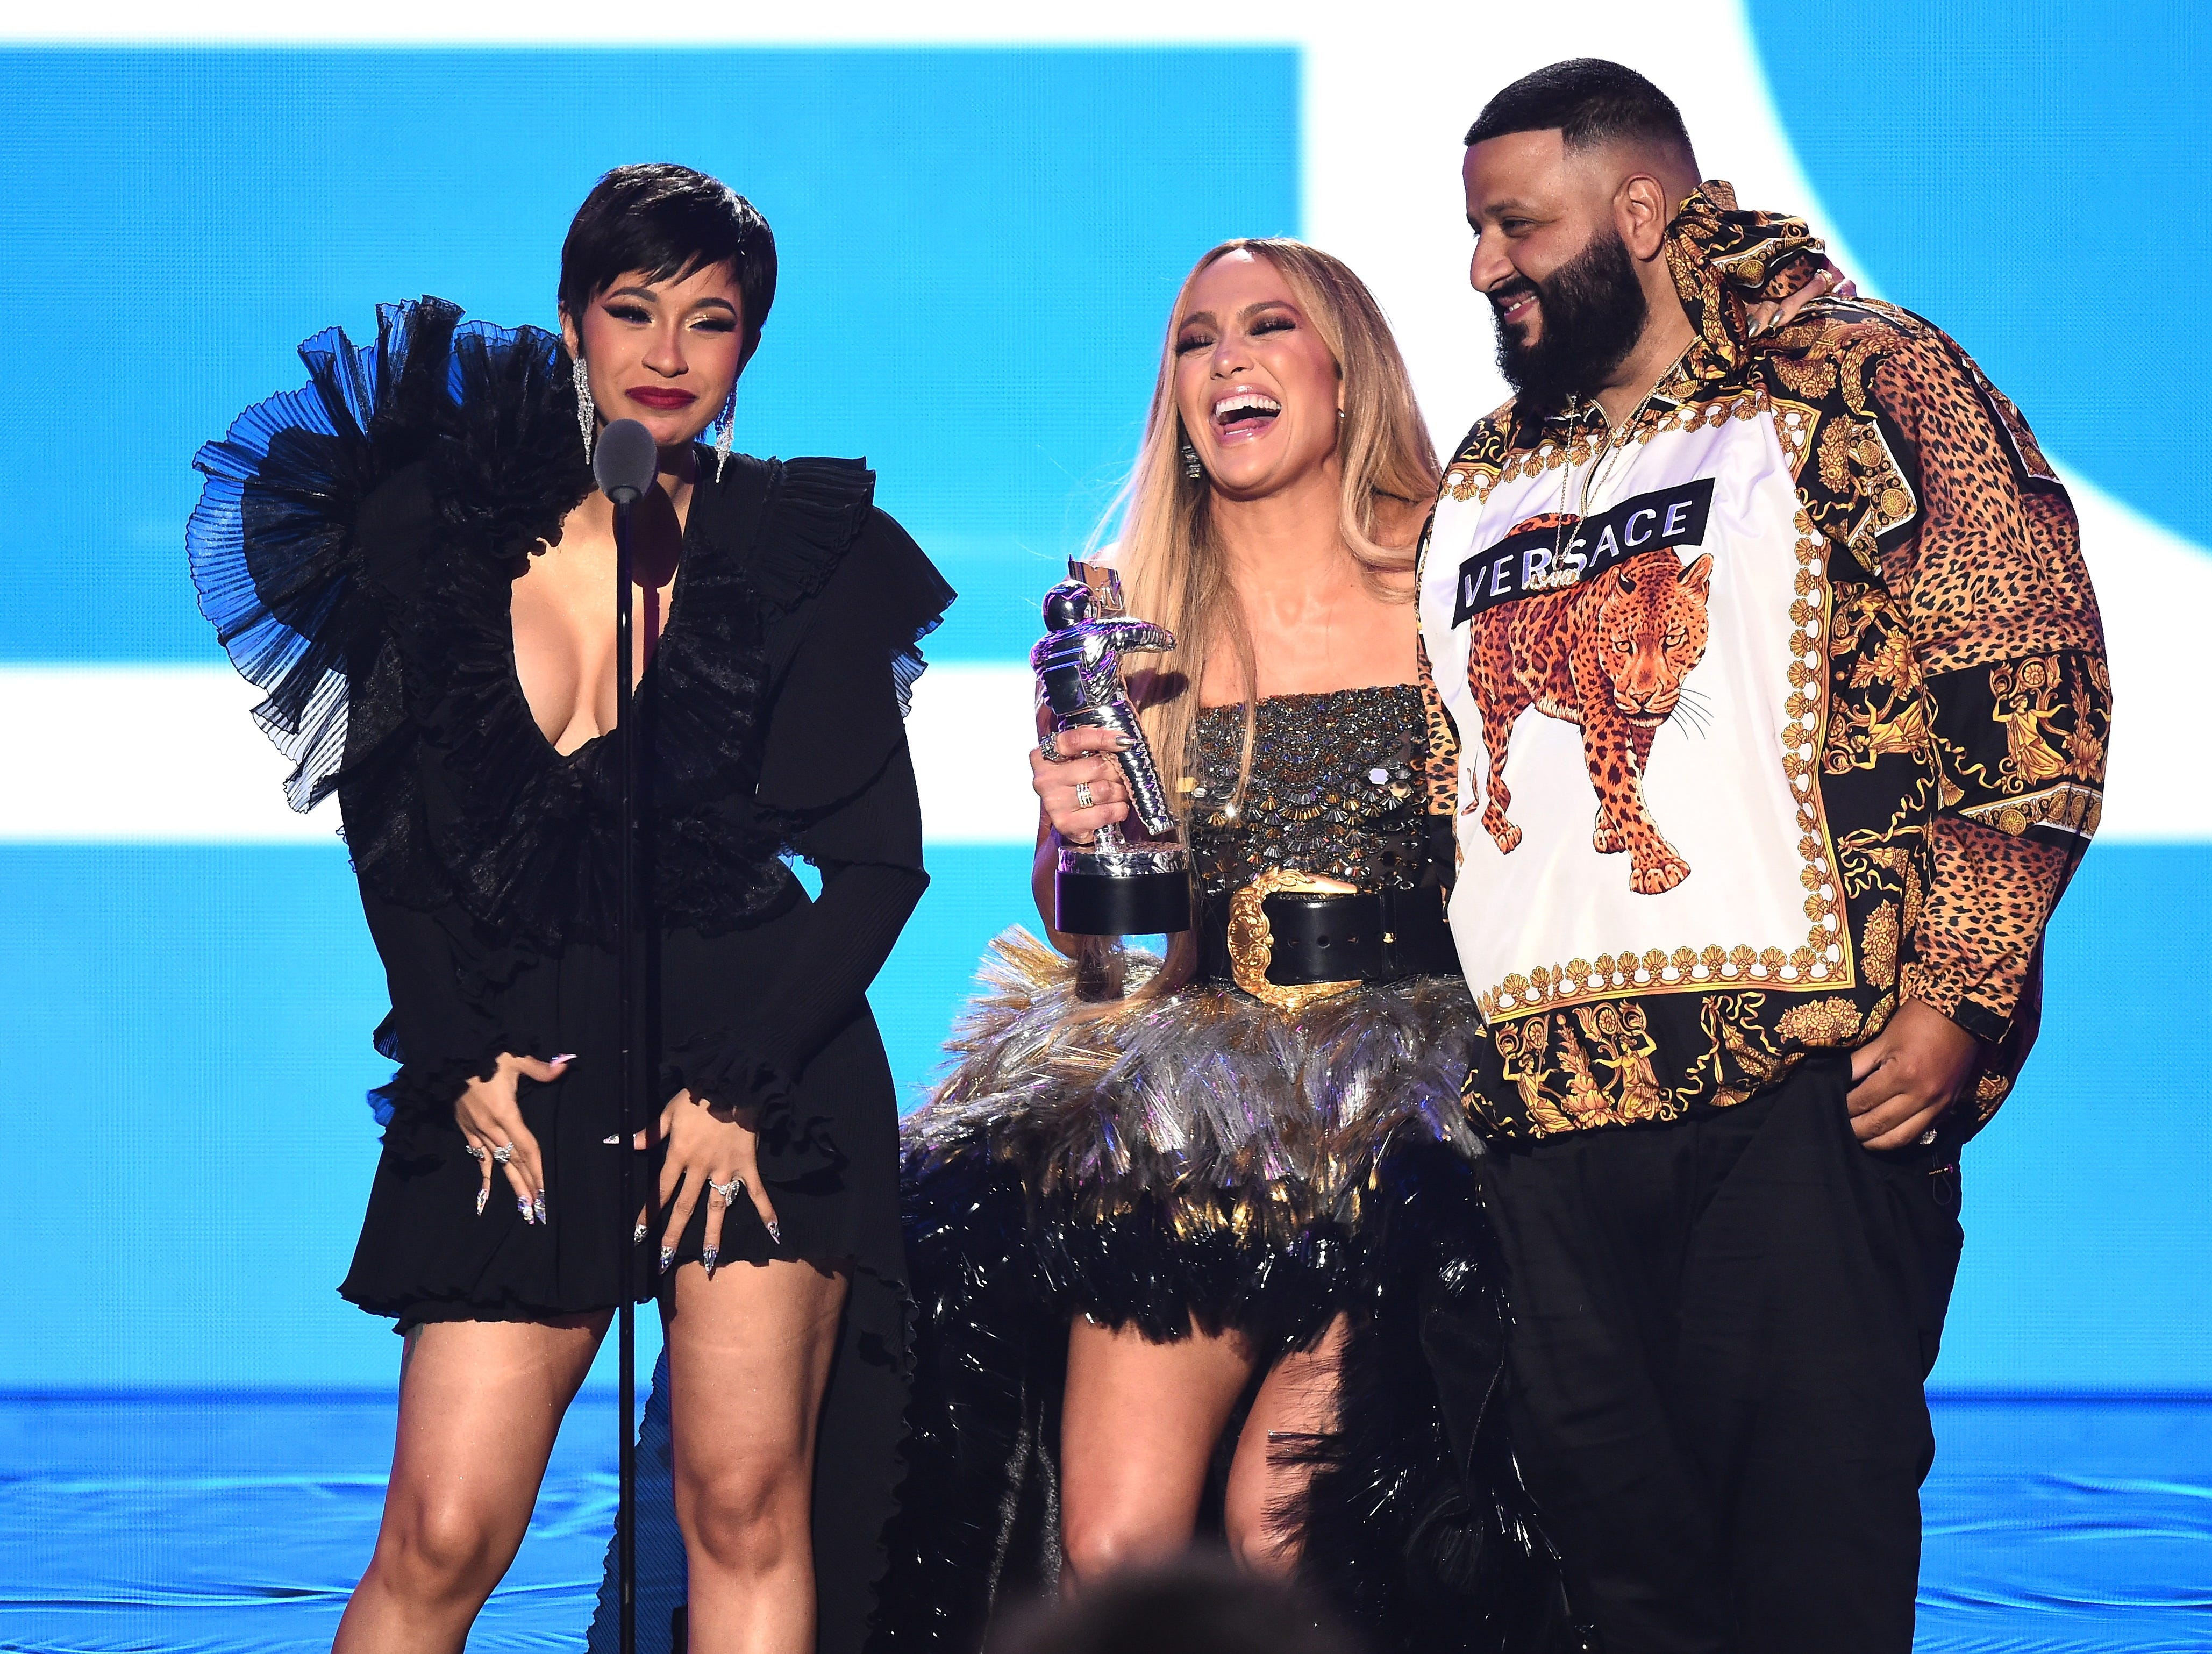 NEW YORK, NY - AUGUST 20:  (L-R) Cardi B, Jennifer Lopez, and DJ Khaled accept the award for Best Collaboration onstage during the 2018 MTV Video Music Awards at Radio City Music Hall on August 20, 2018 in New York City.  (Photo by Michael Loccisano/Getty Images for MTV) ORG XMIT: 775210297 ORIG FILE ID: 1020399376